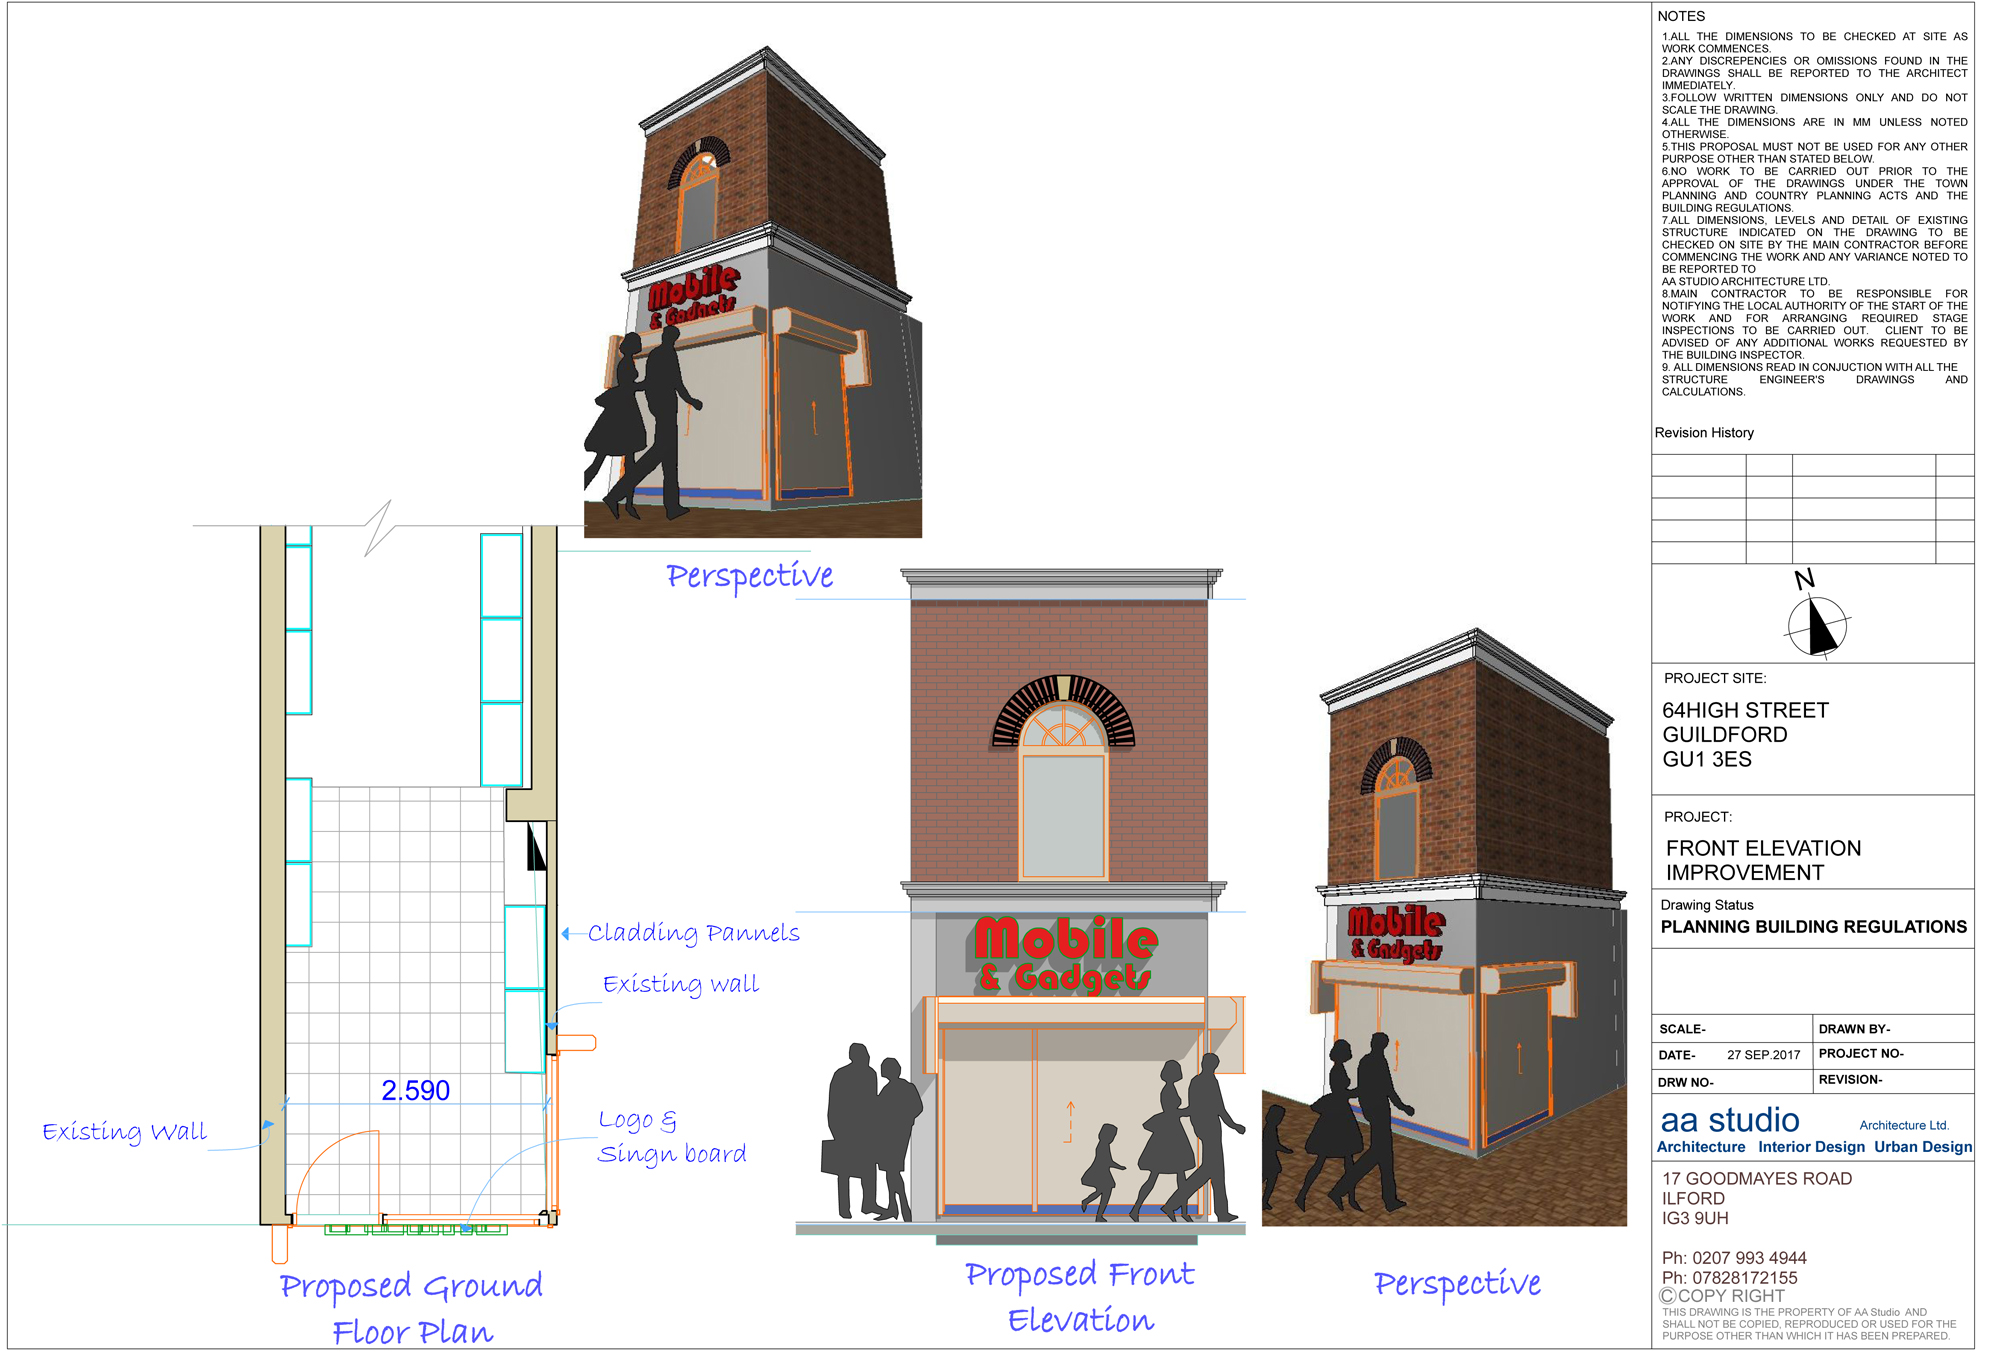 A3 Planning Permission London